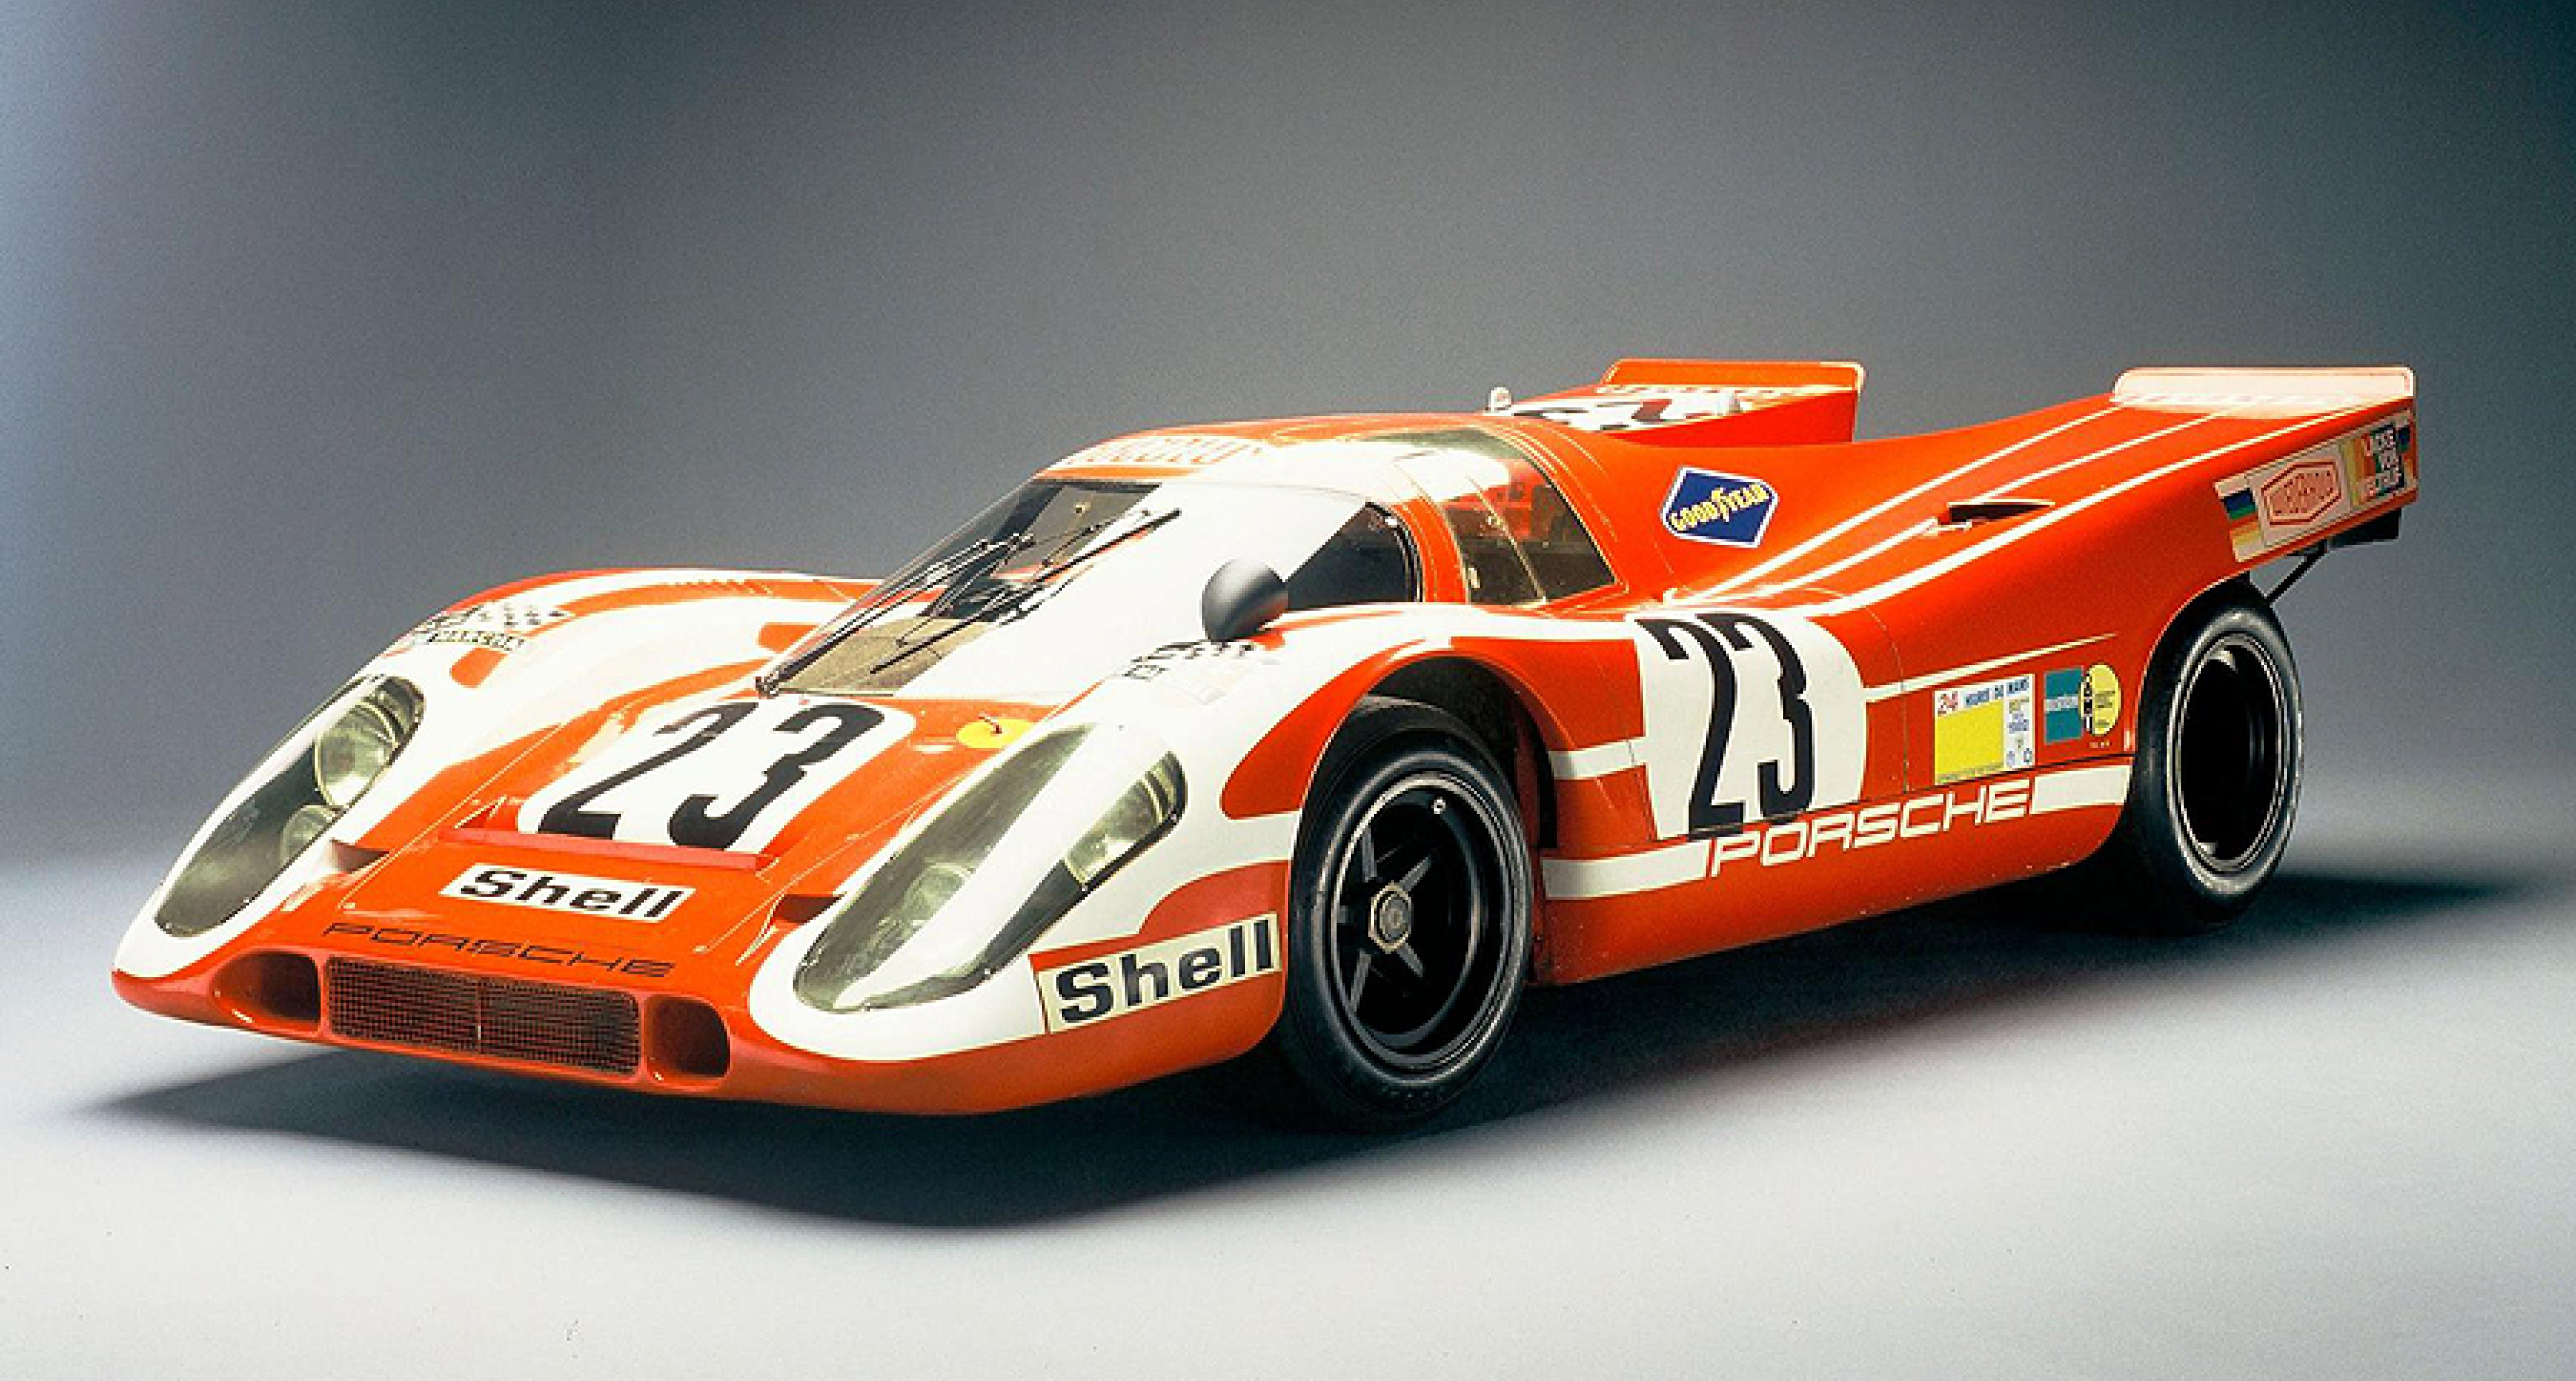 Porsche revisits Le Mans history ahead of 2014 relaunch